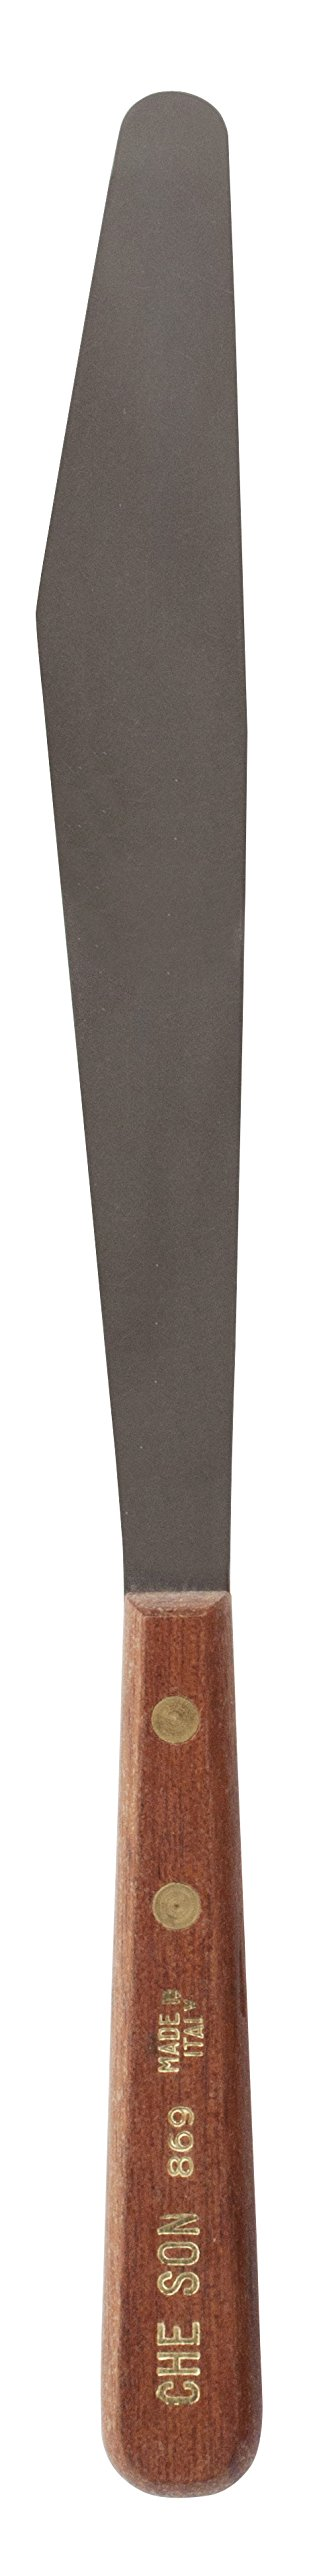 Jack Richeson 800869 7-1/2'' x 1'' Stainless Steel Spatula